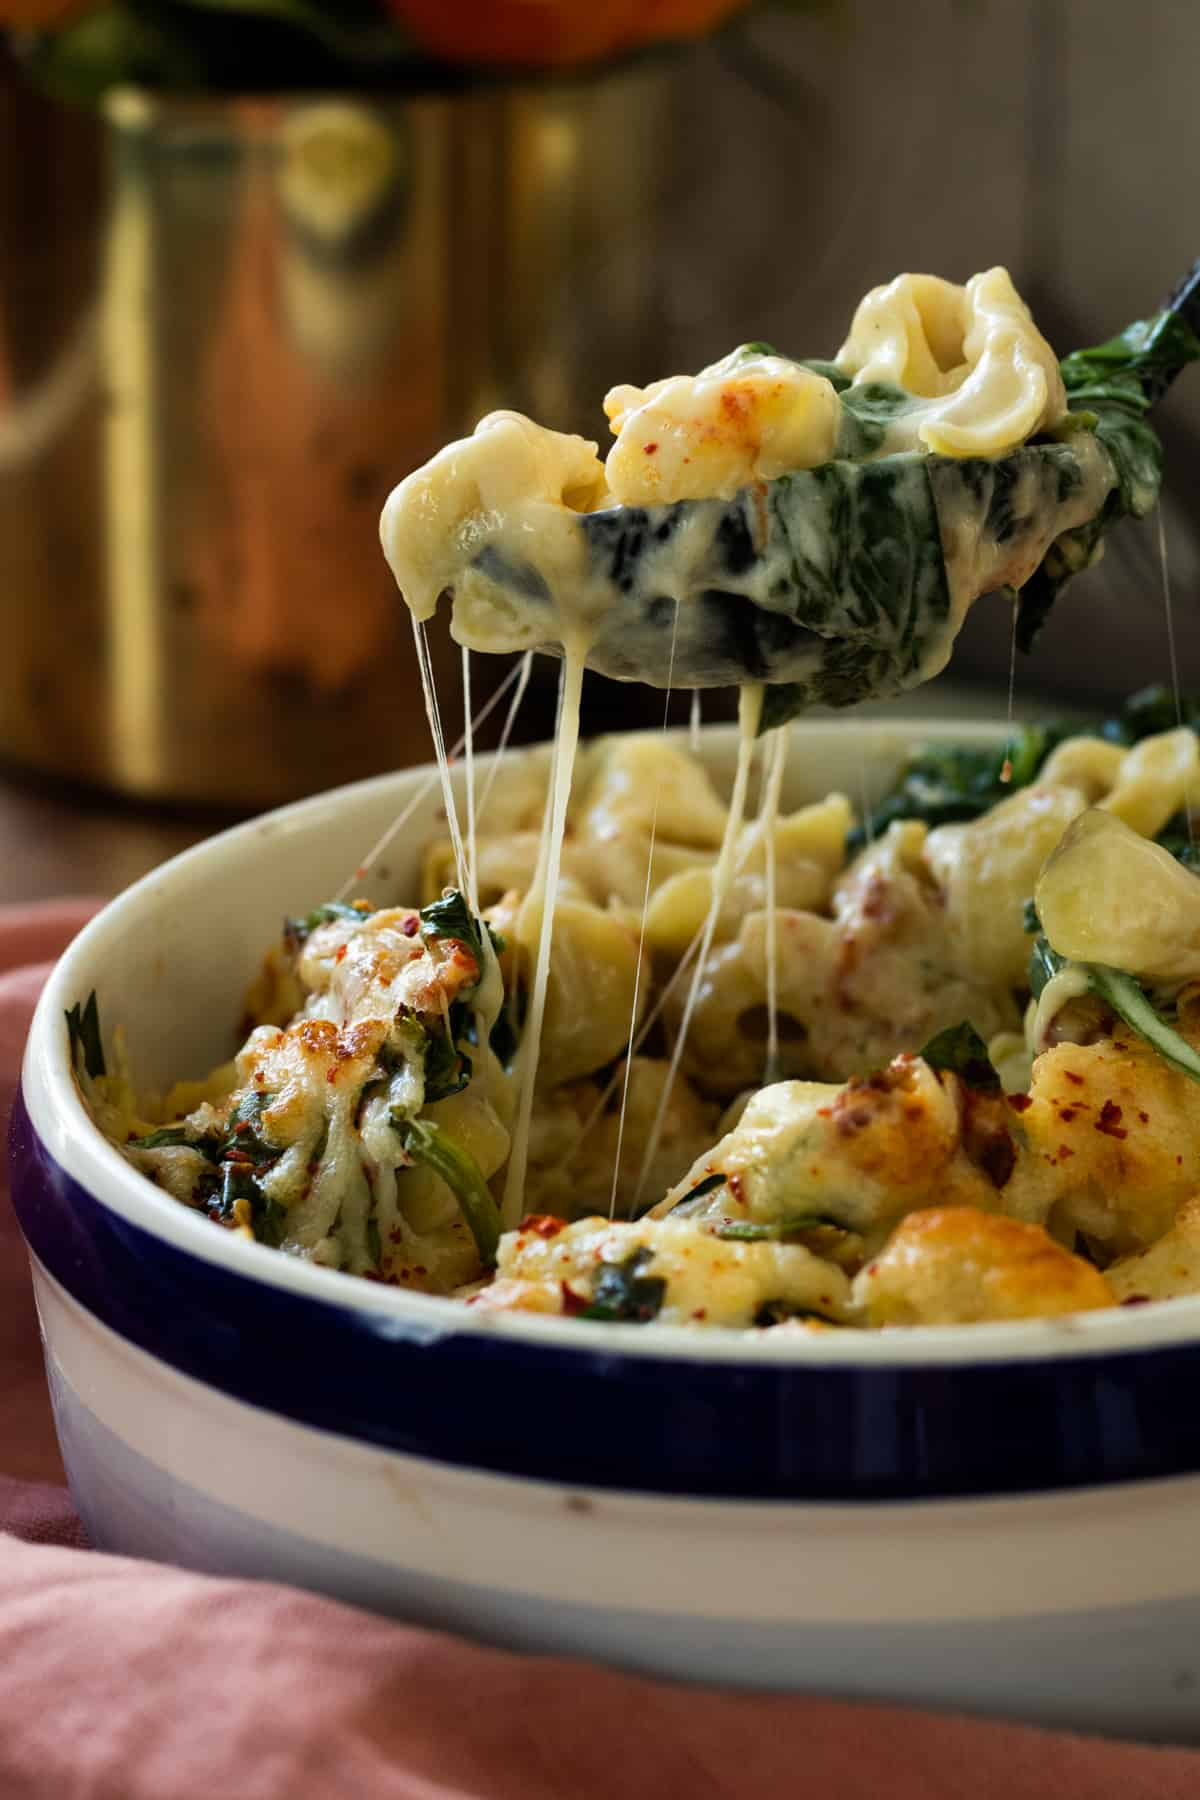 a spoonful of tortellini and spinach being lifted out of a dish full